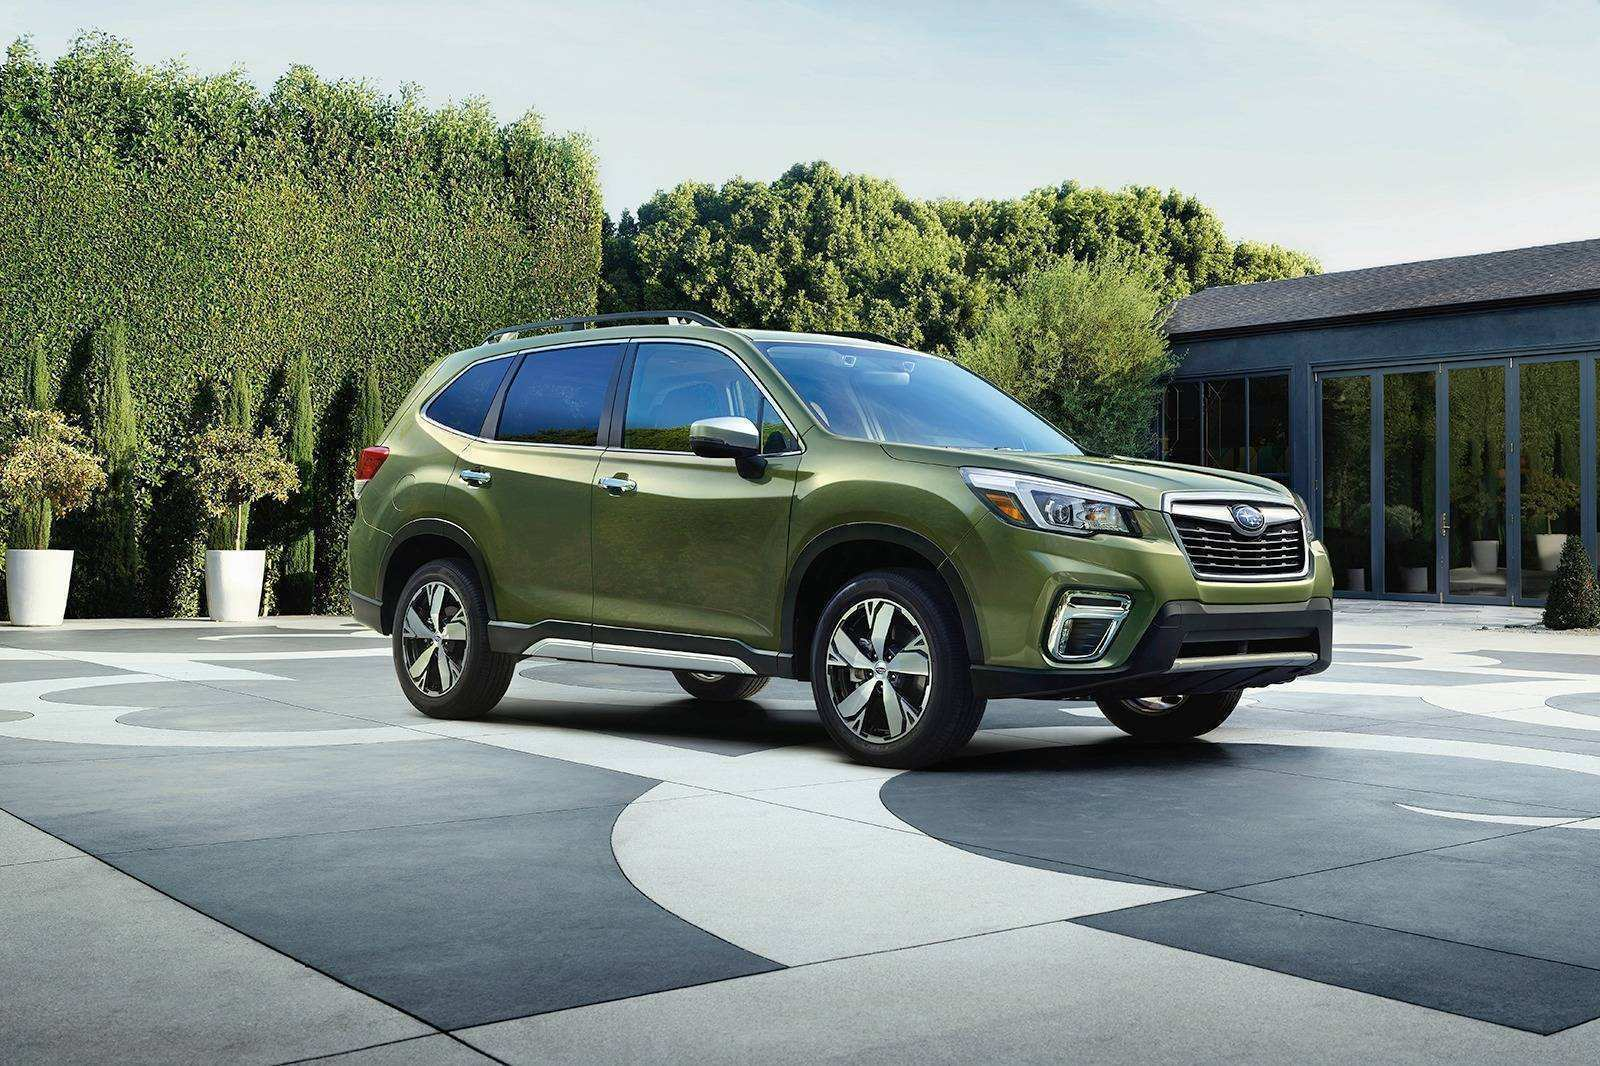 31 New Dimensions Of 2019 Subaru Forester Photos